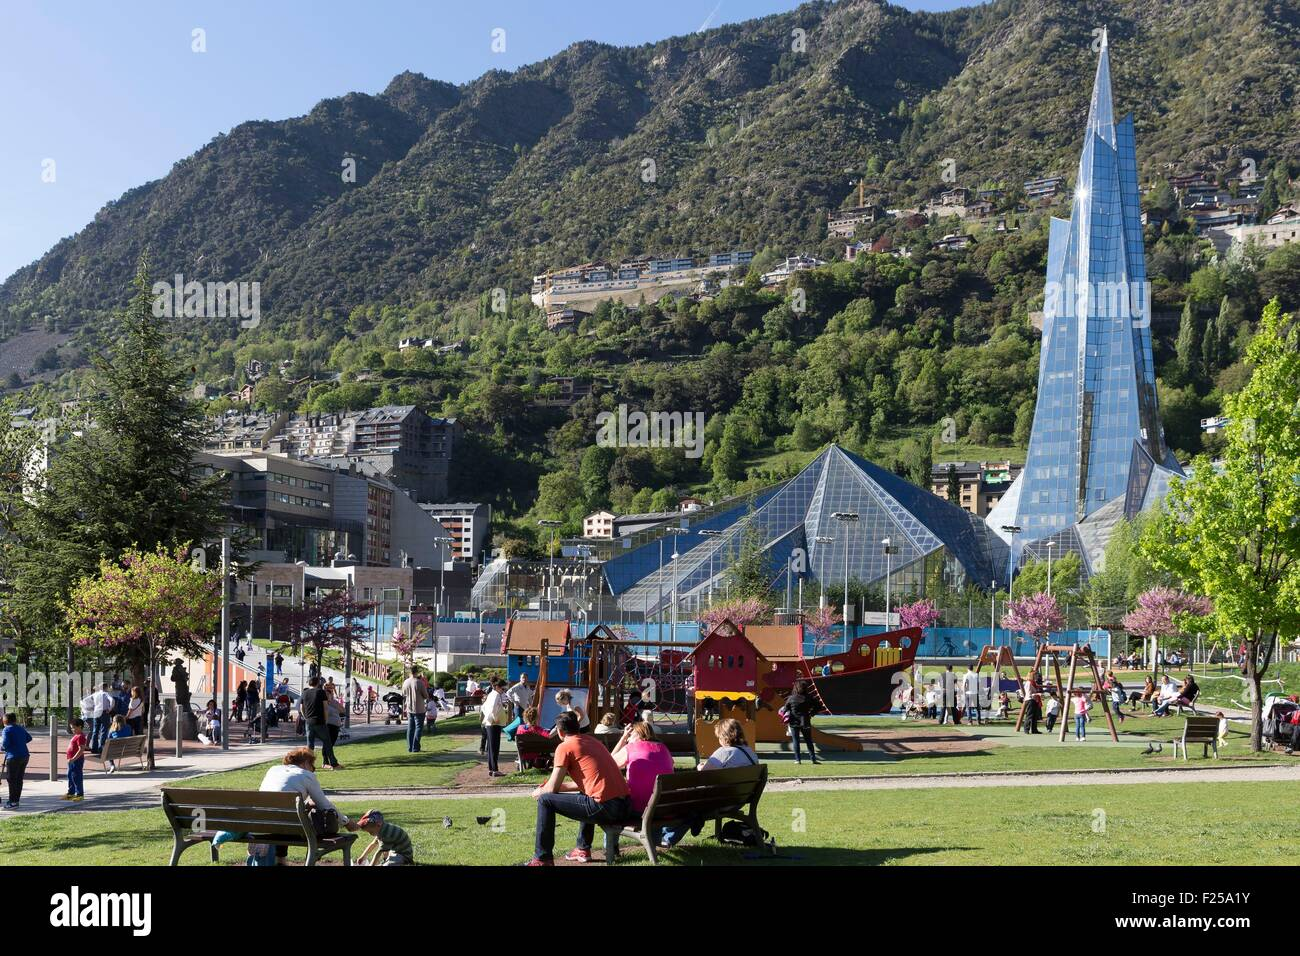 Andorra, Andorra La Vella, capital city of Andorra state, Escaldes Engordany, Caldea thermal spa and wellness resort - Stock Image